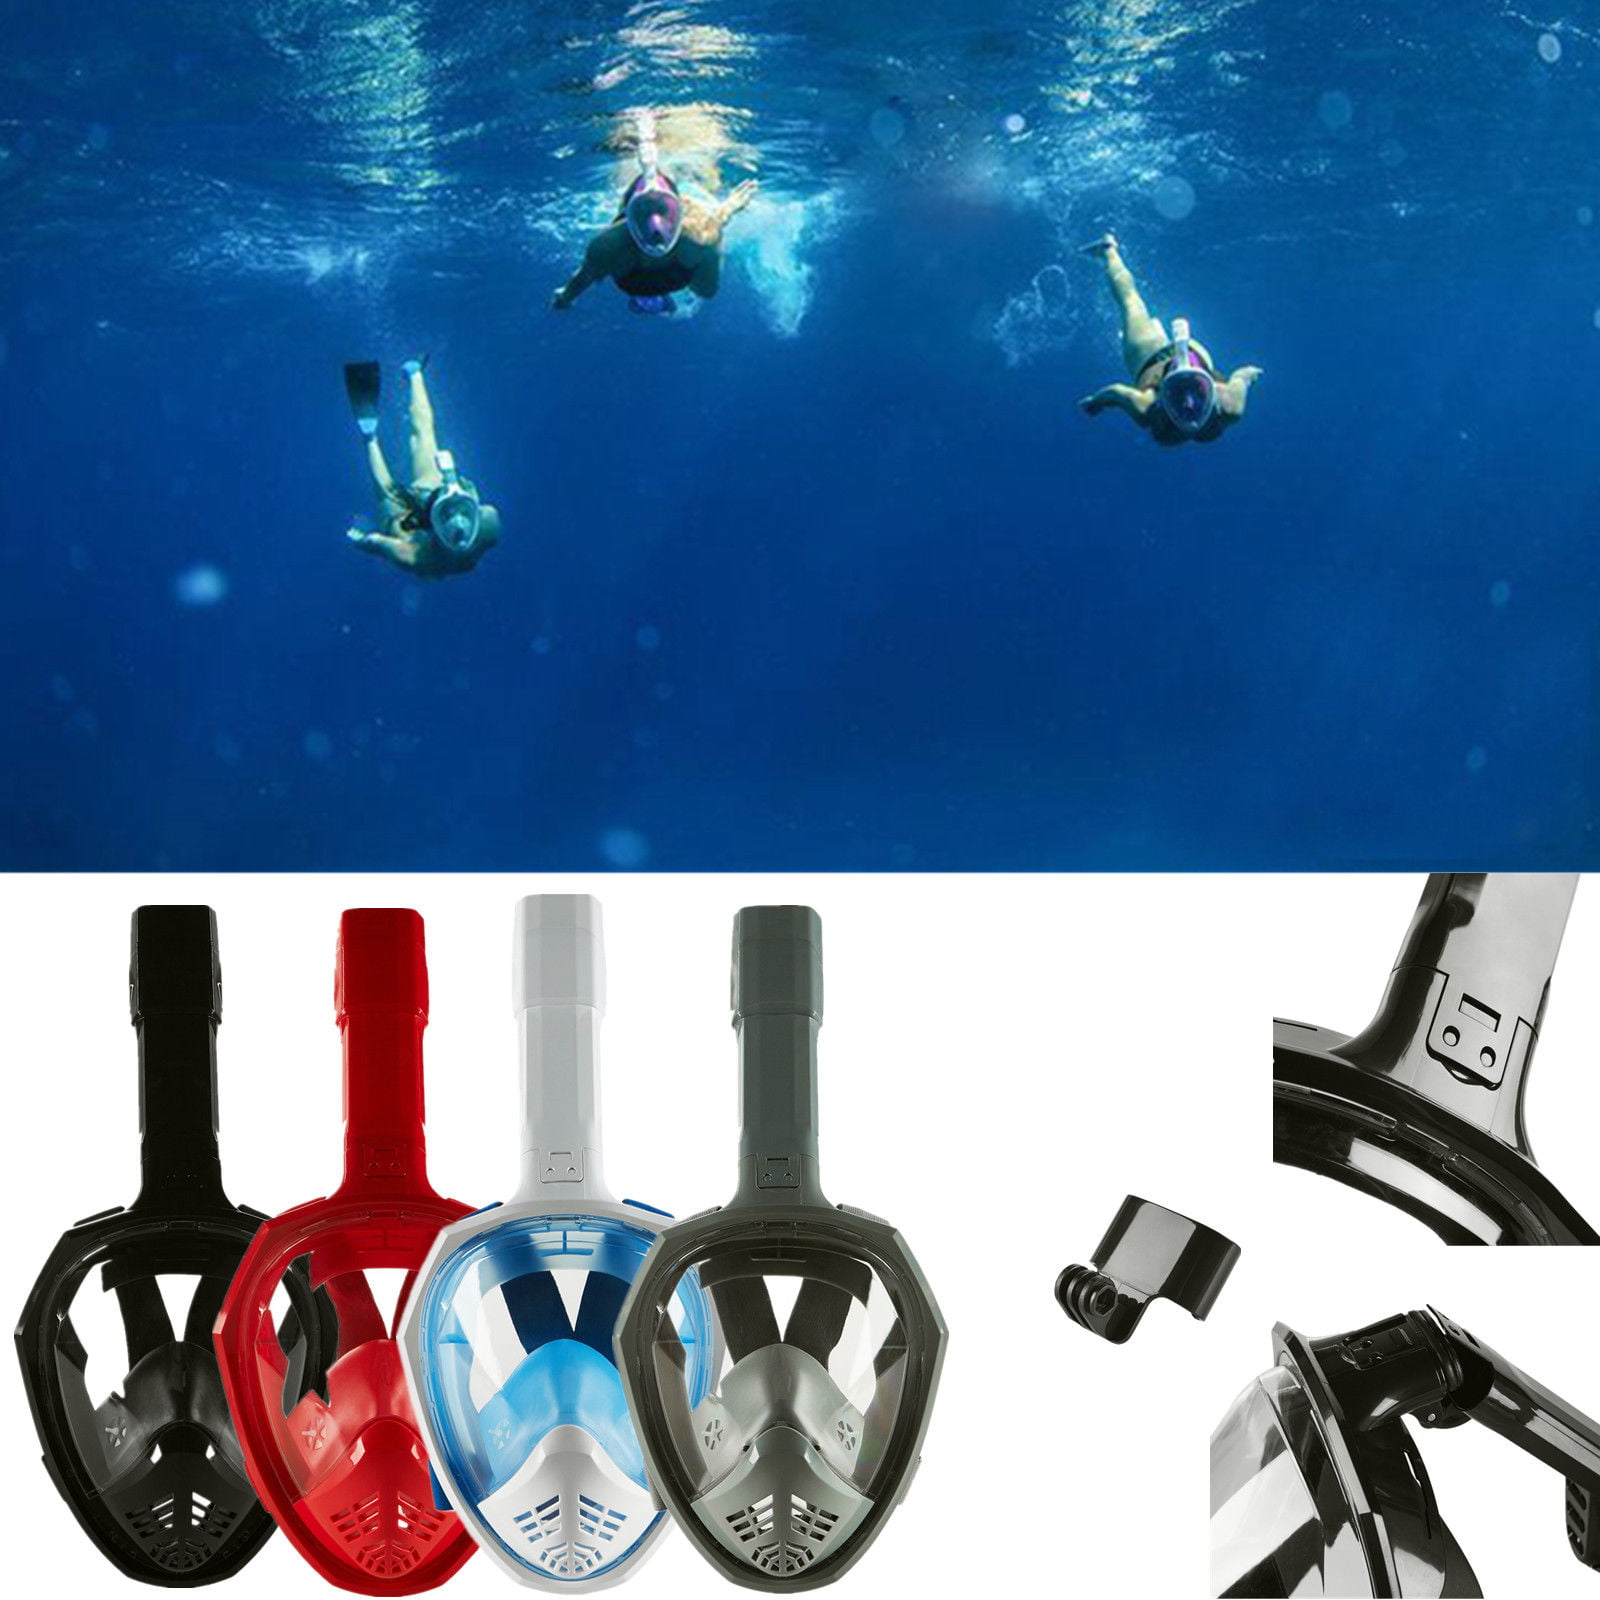 Full Face Snorkeling Snorkel Mask Diving Goggles With Breather Pipe For GoPro by Cheerwing